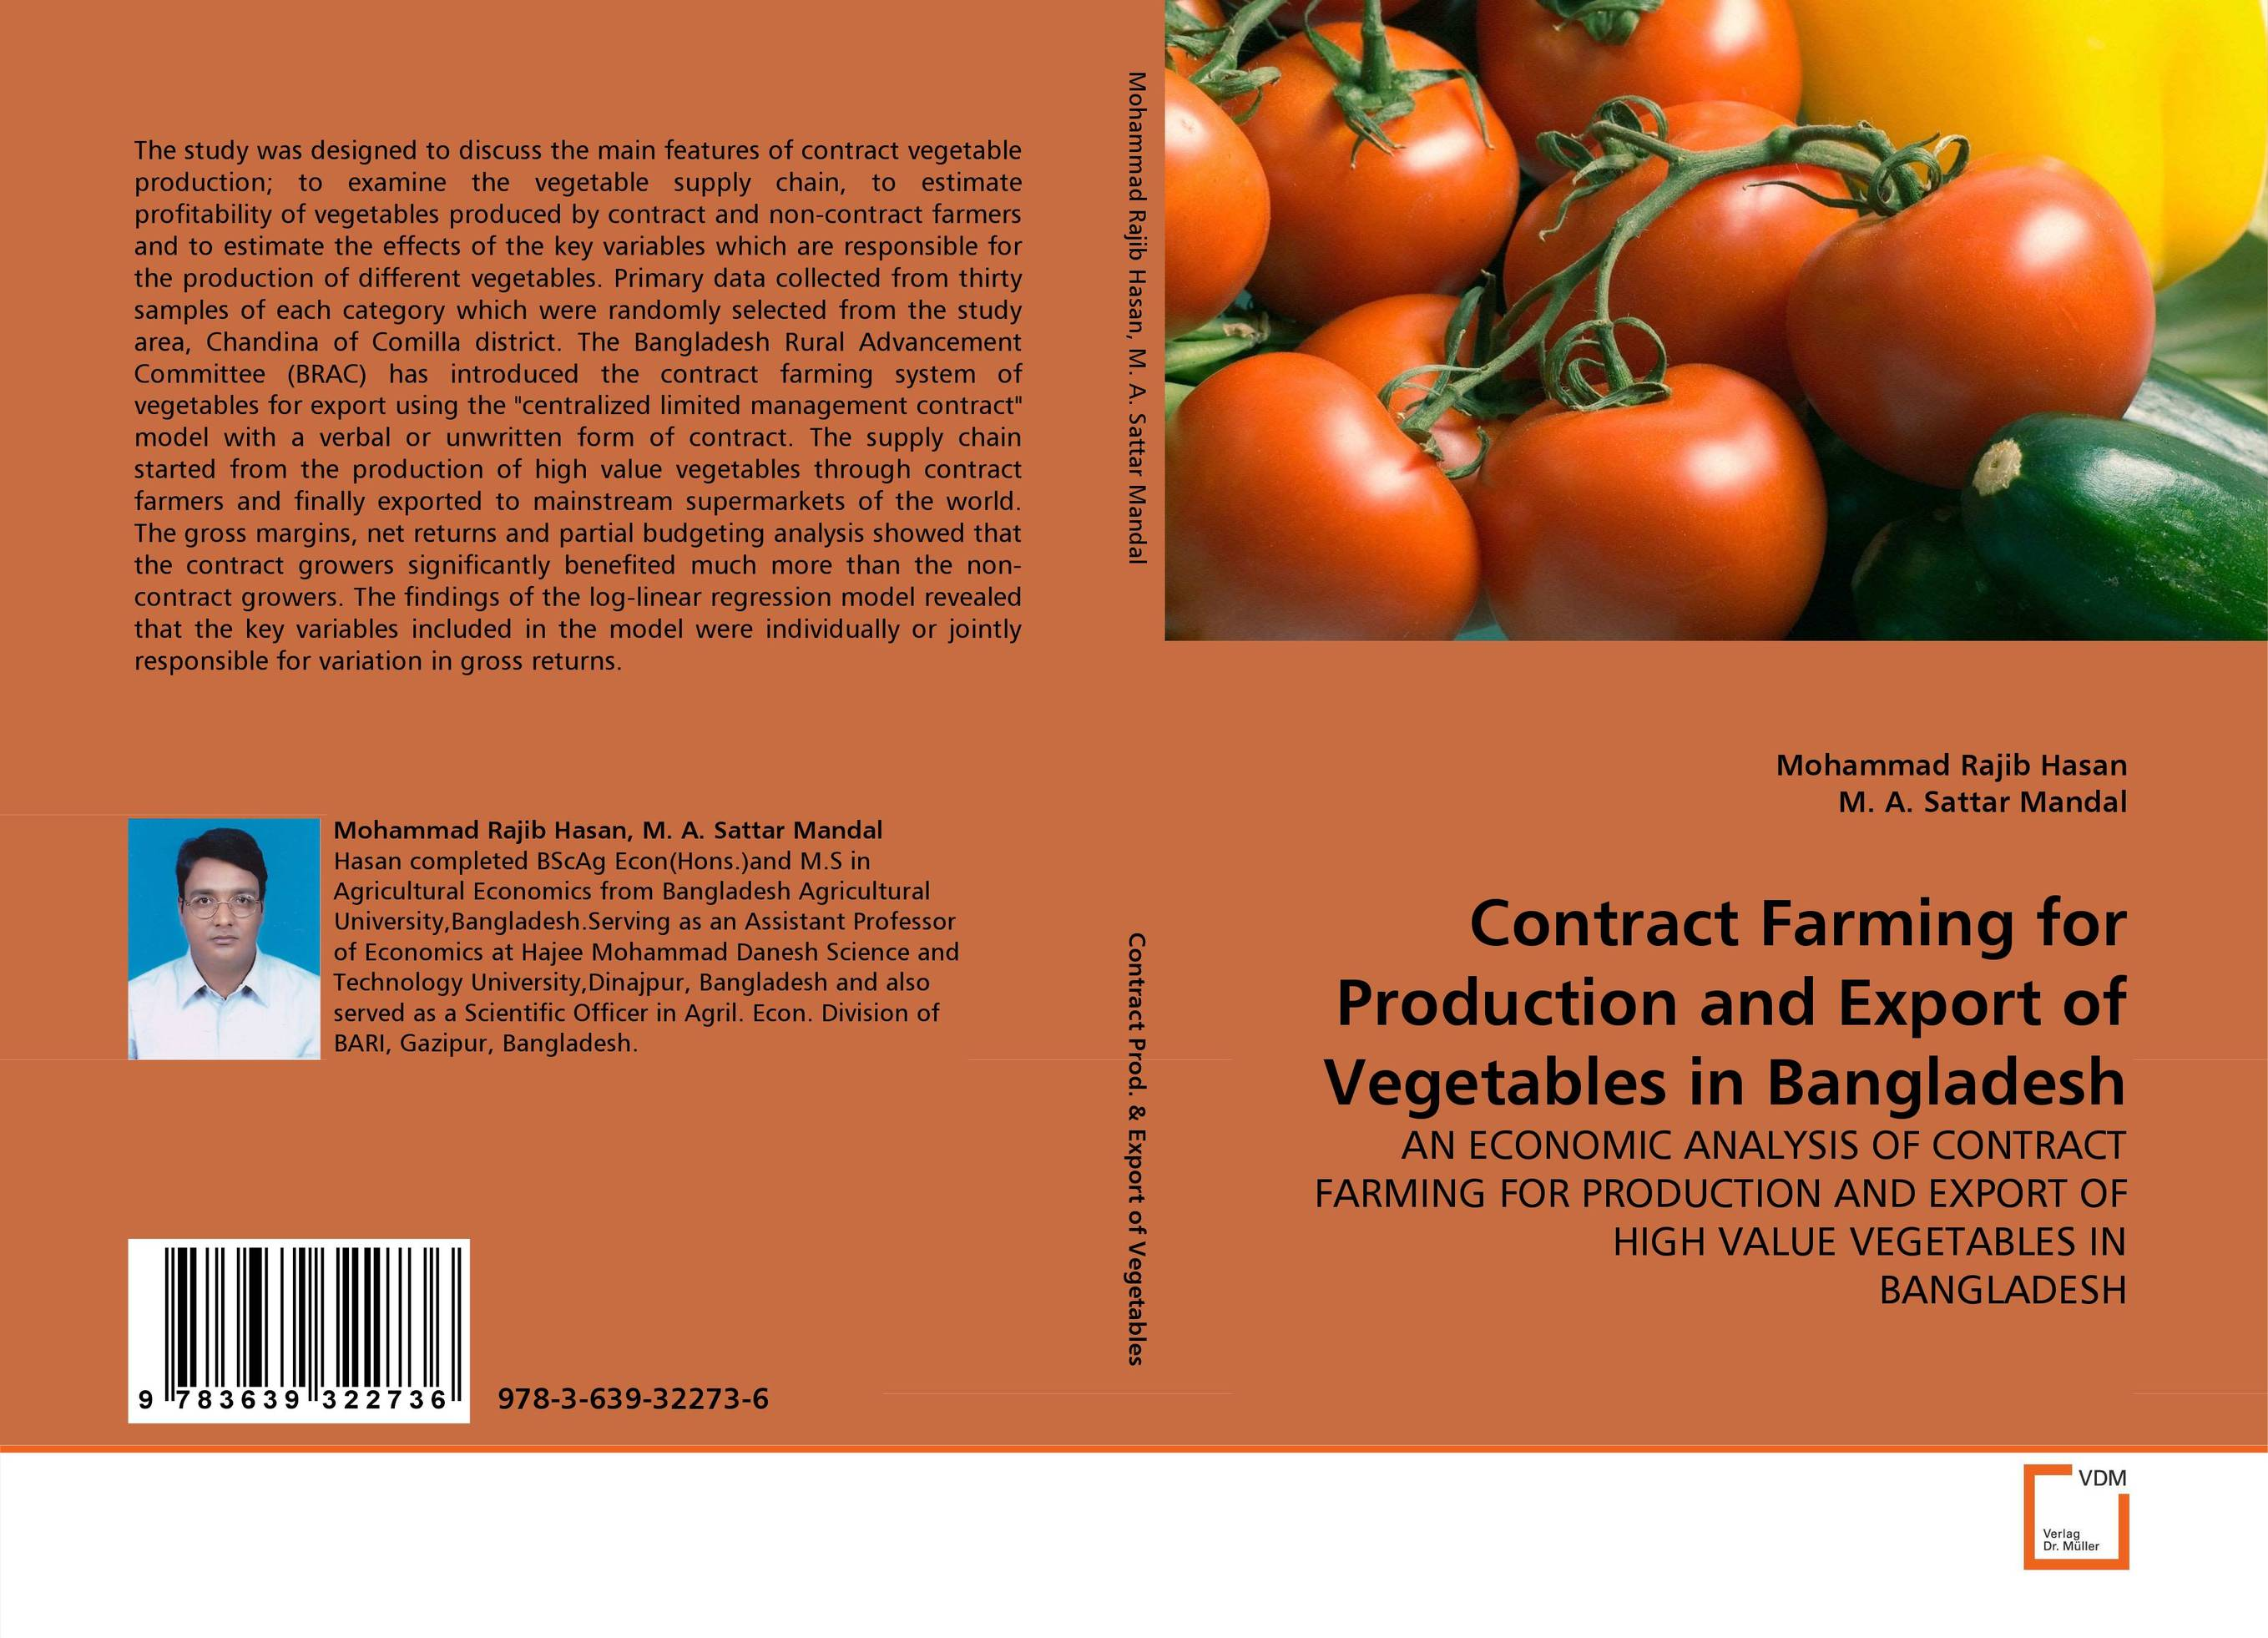 Contract Farming for Production and Export of Vegetables in Bangladesh